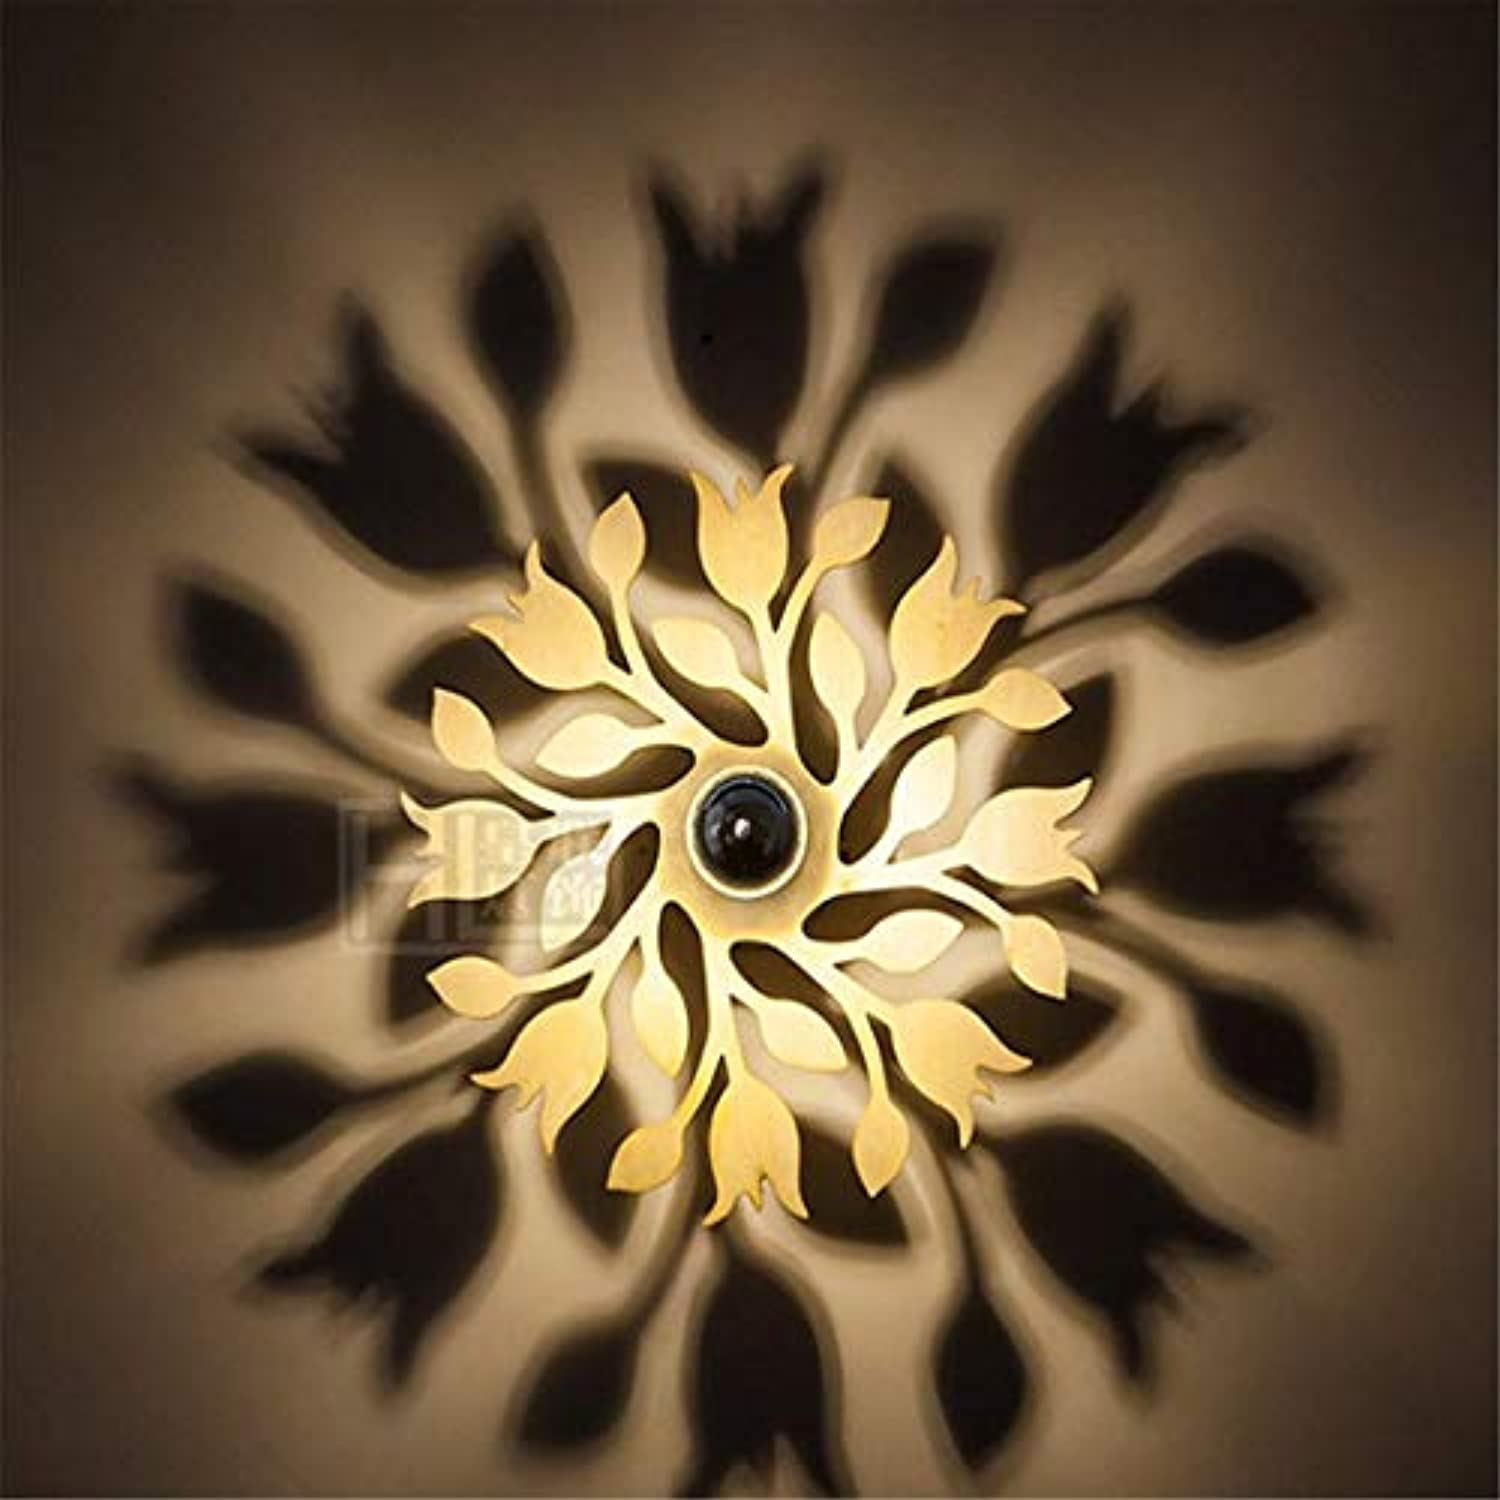 Lichtwall Sconce Wall Lights Bedside Lamp Nordic Living Room Wall Lamp Modern Simple Creative Personality Aisle Wall Lamp Bedroom Wooden Wall 30Cm Led Wall Lamp [Energy Class A++]